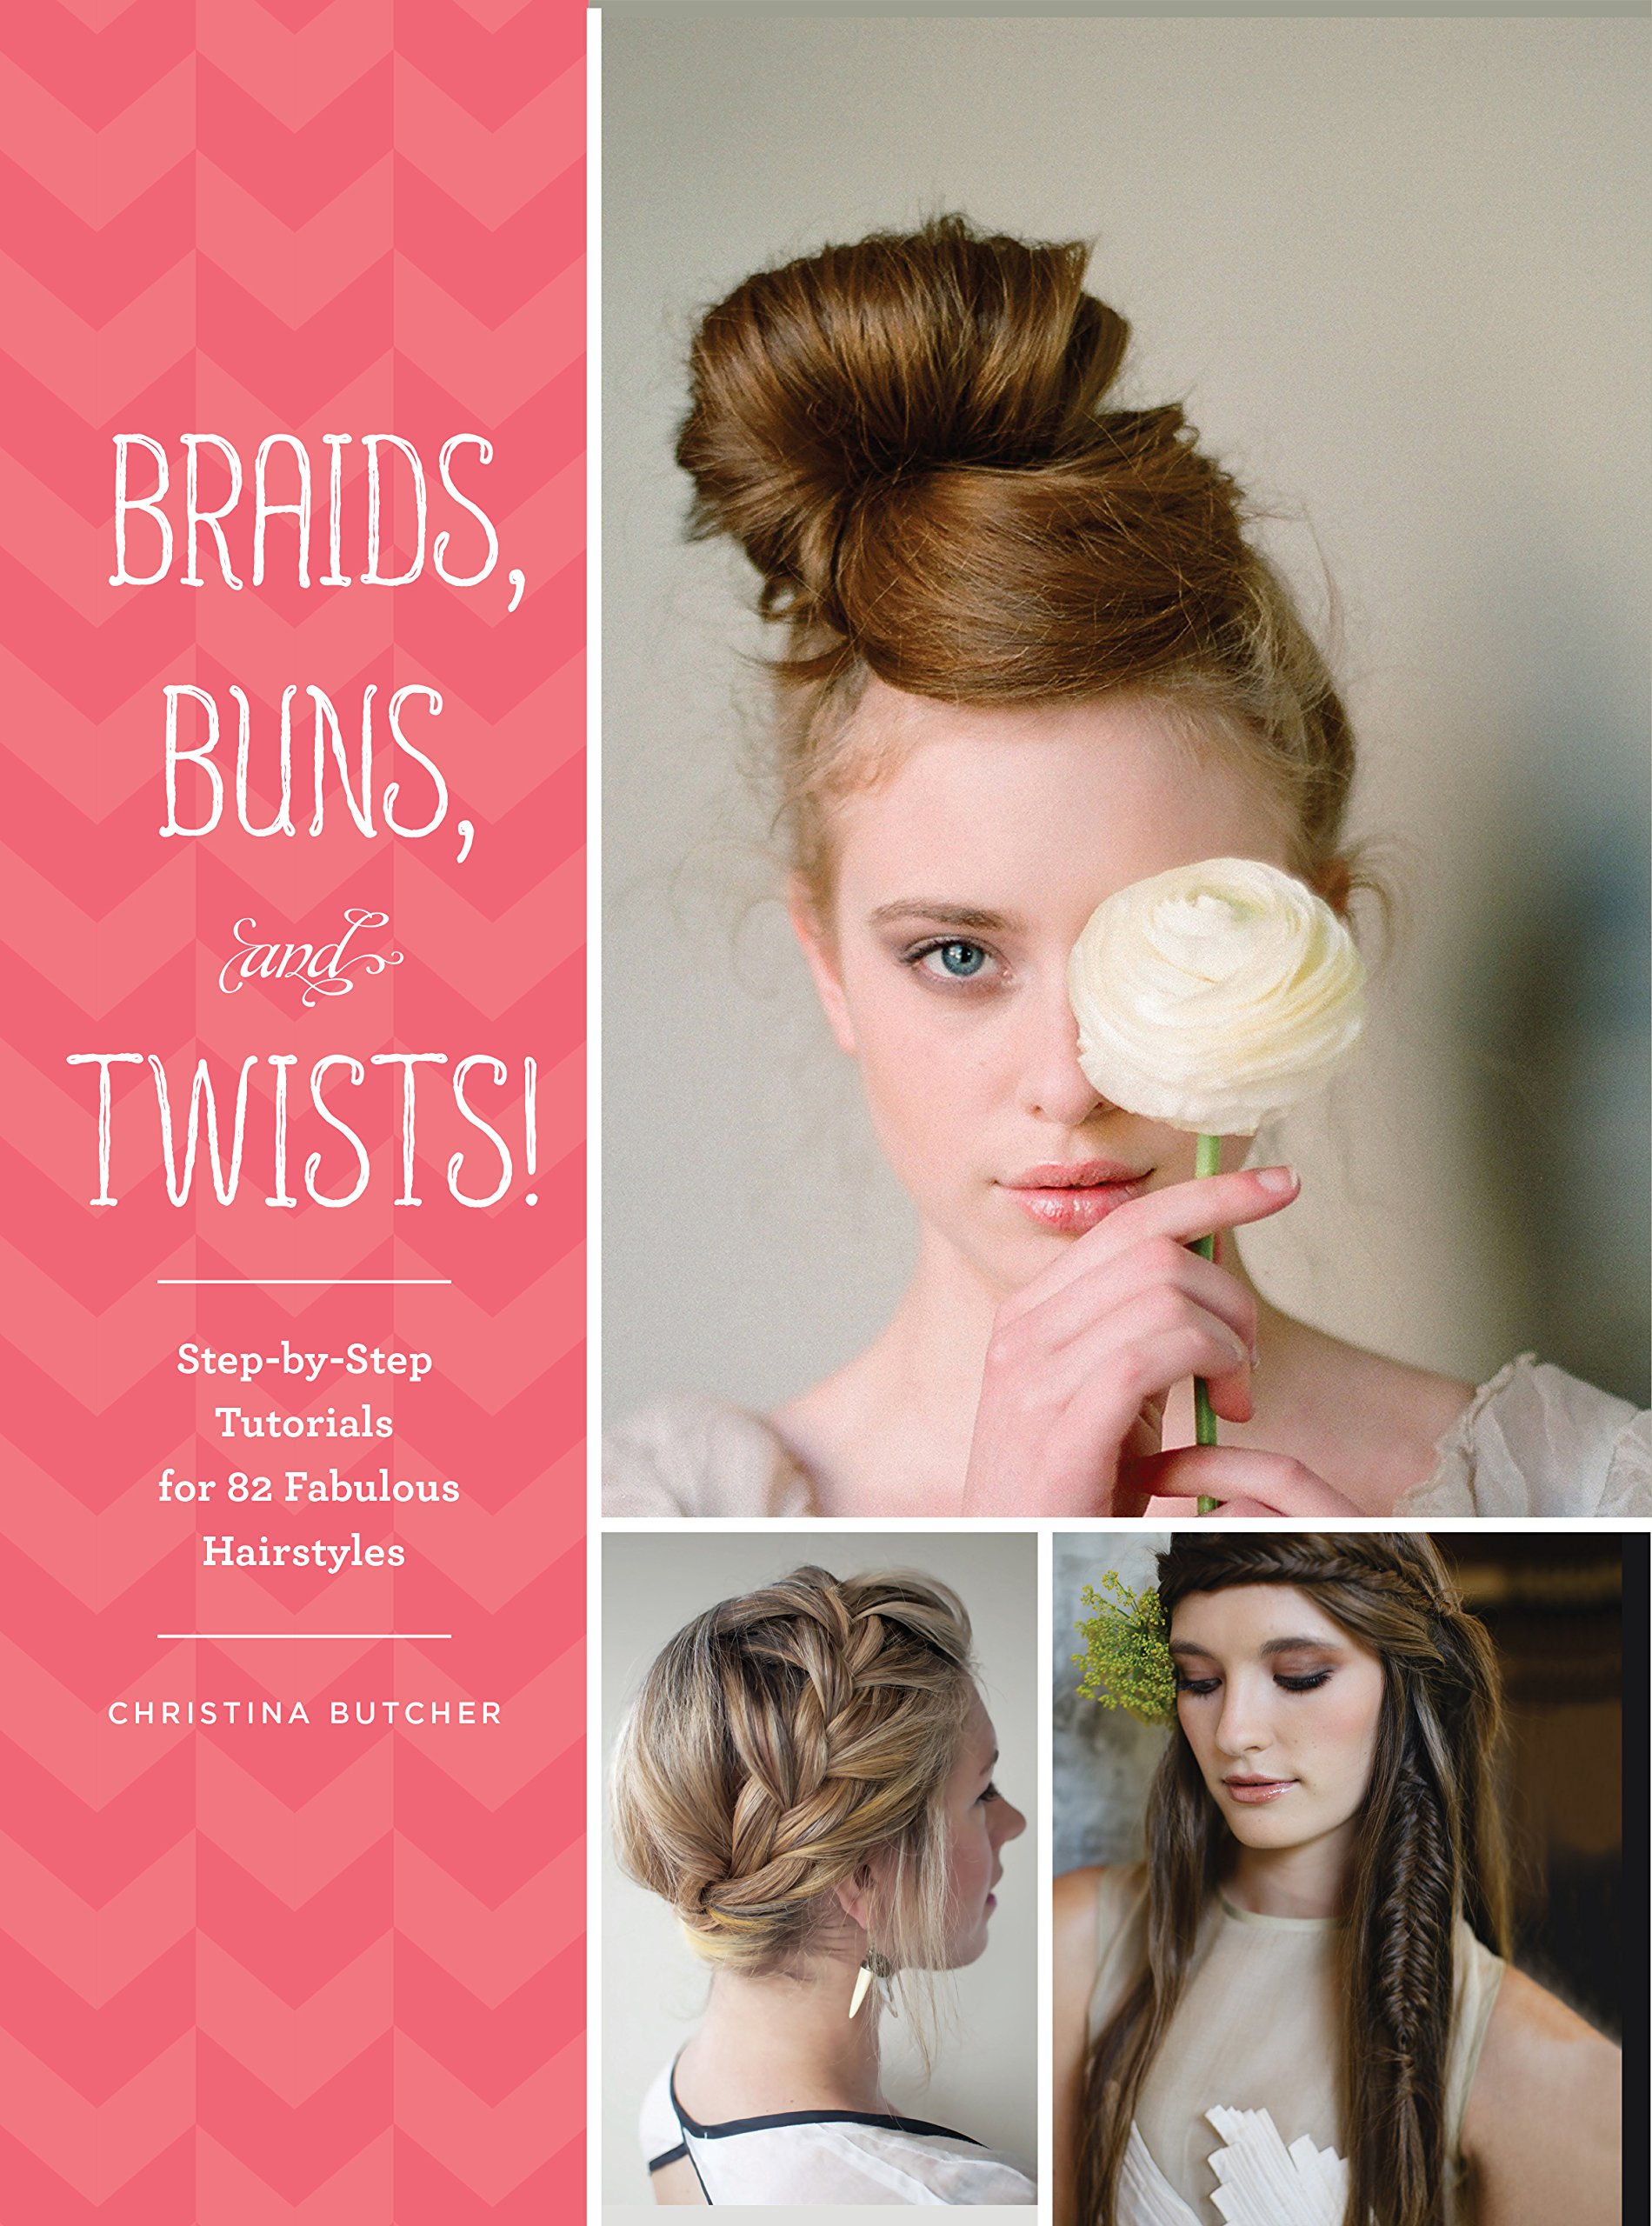 Step-by-Step Tutorials for 82 Fabulous Hairstyles Book Online at Low Prices  in India | Braids, Buns, and Twists!: Step-by-Step Tutorials for 82 Fabulous  ...